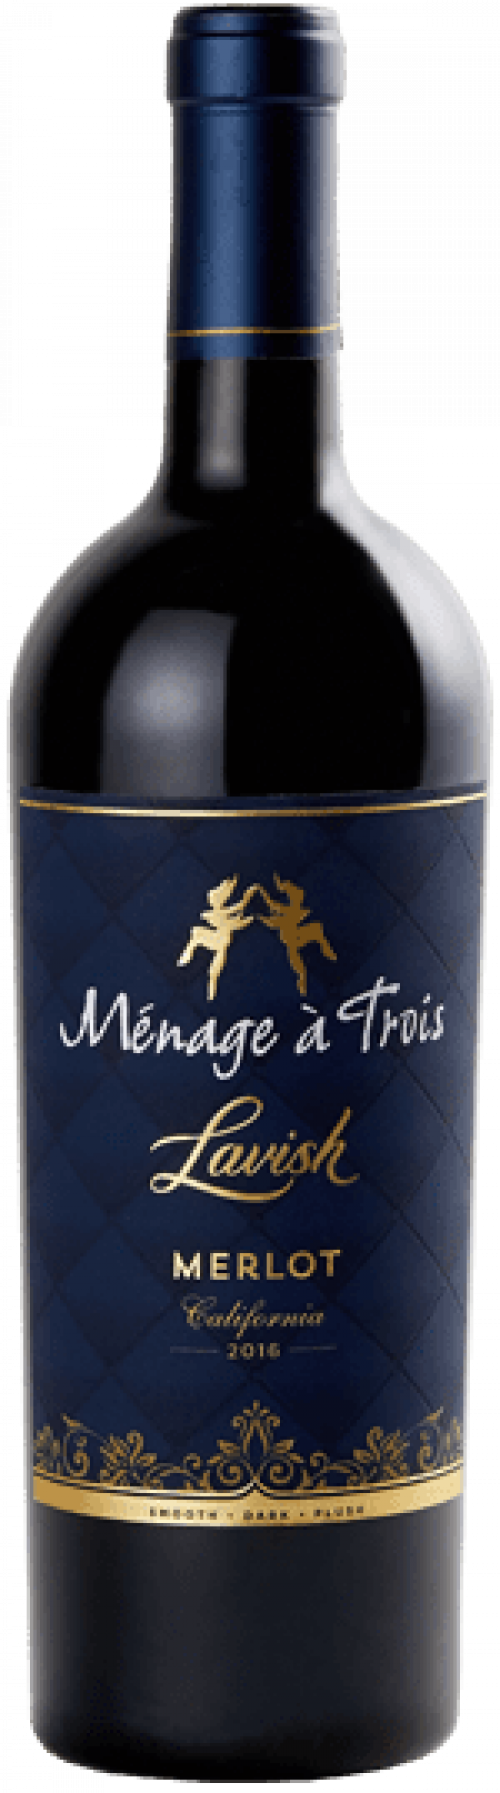 Menage A Trois Lavish Merlot 750ml NV